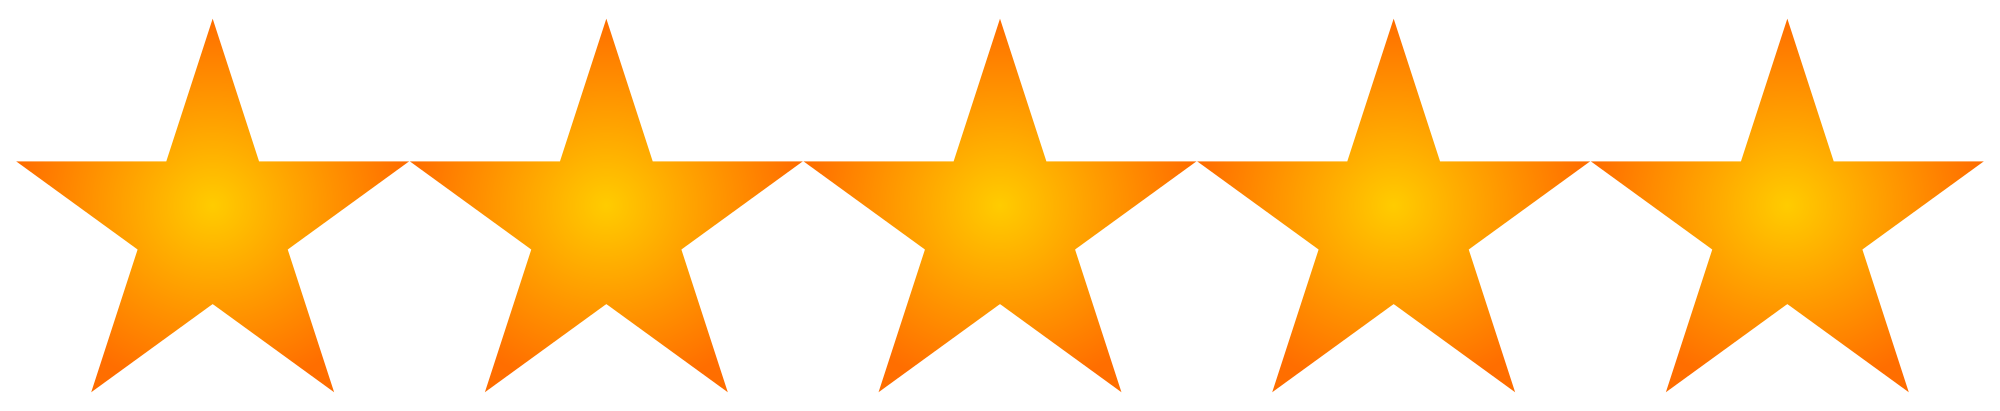 Star svg #1, Download drawings